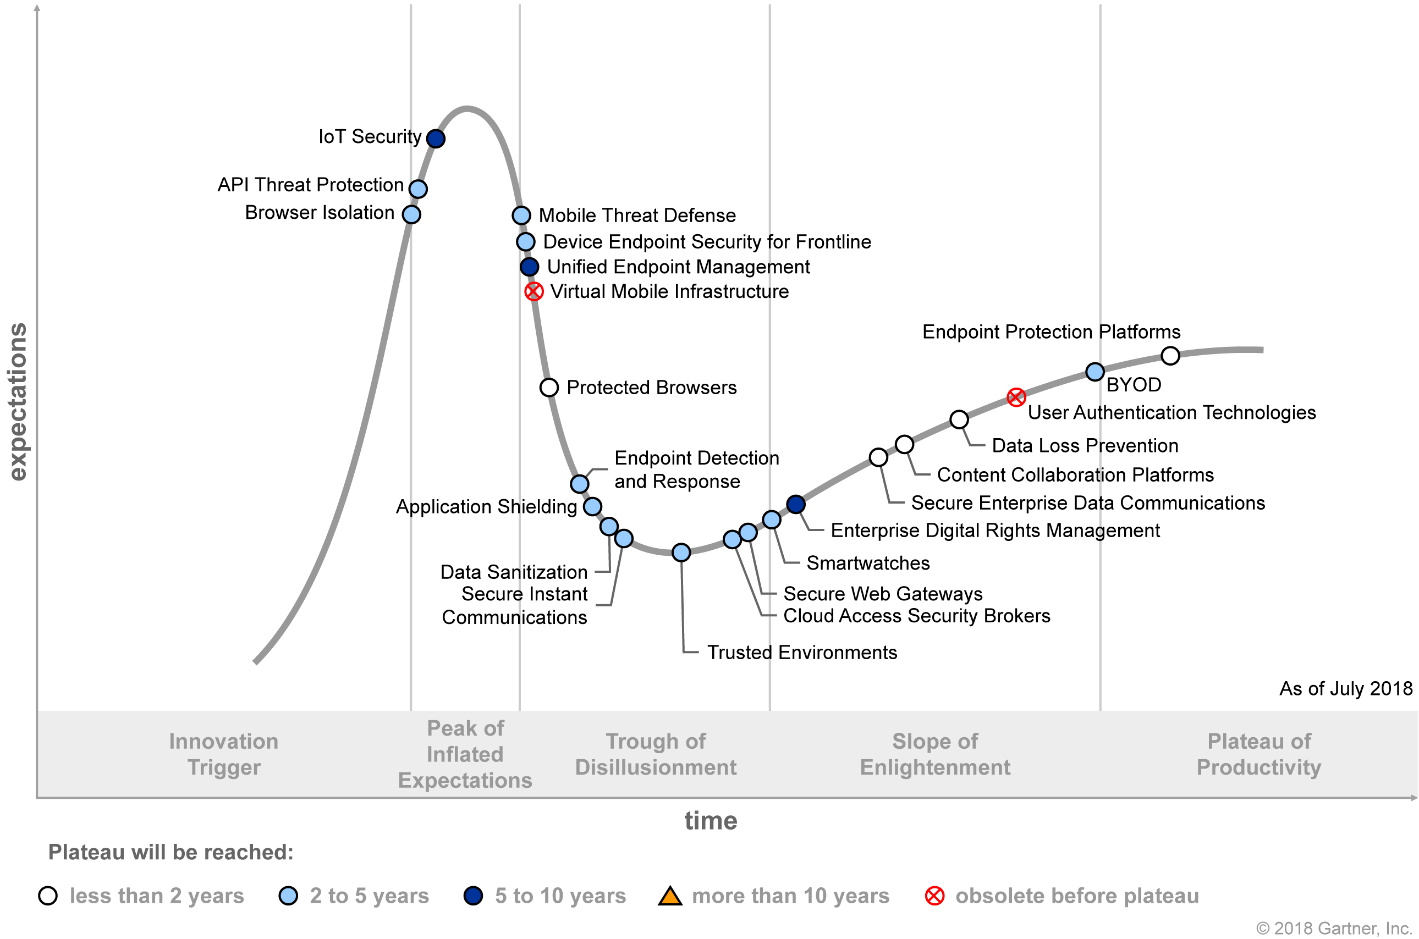 Gartner Hype Cycle for Endpoint and Mobile Security 2018 (G00338755)